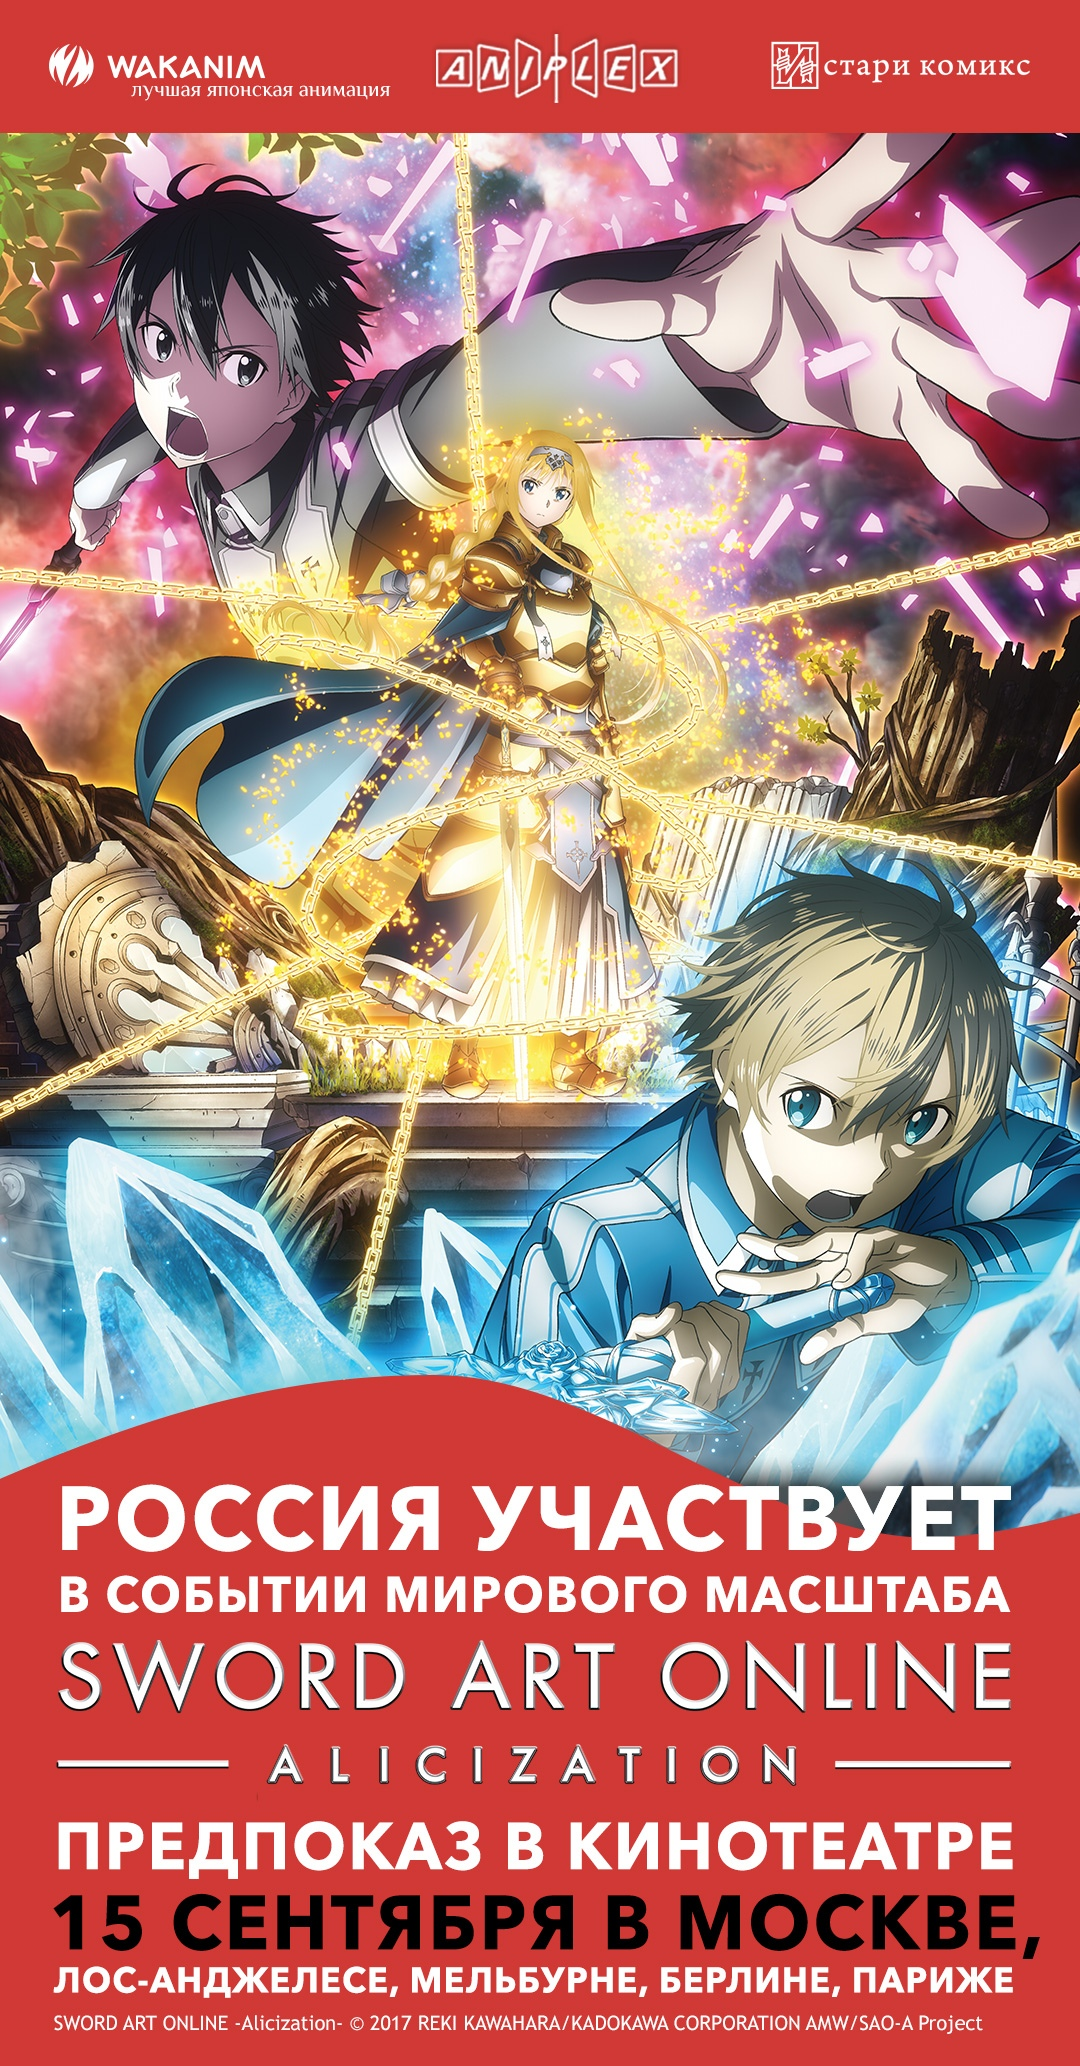 Аниме в кино: Sword Art Online - Alicization (Москва)